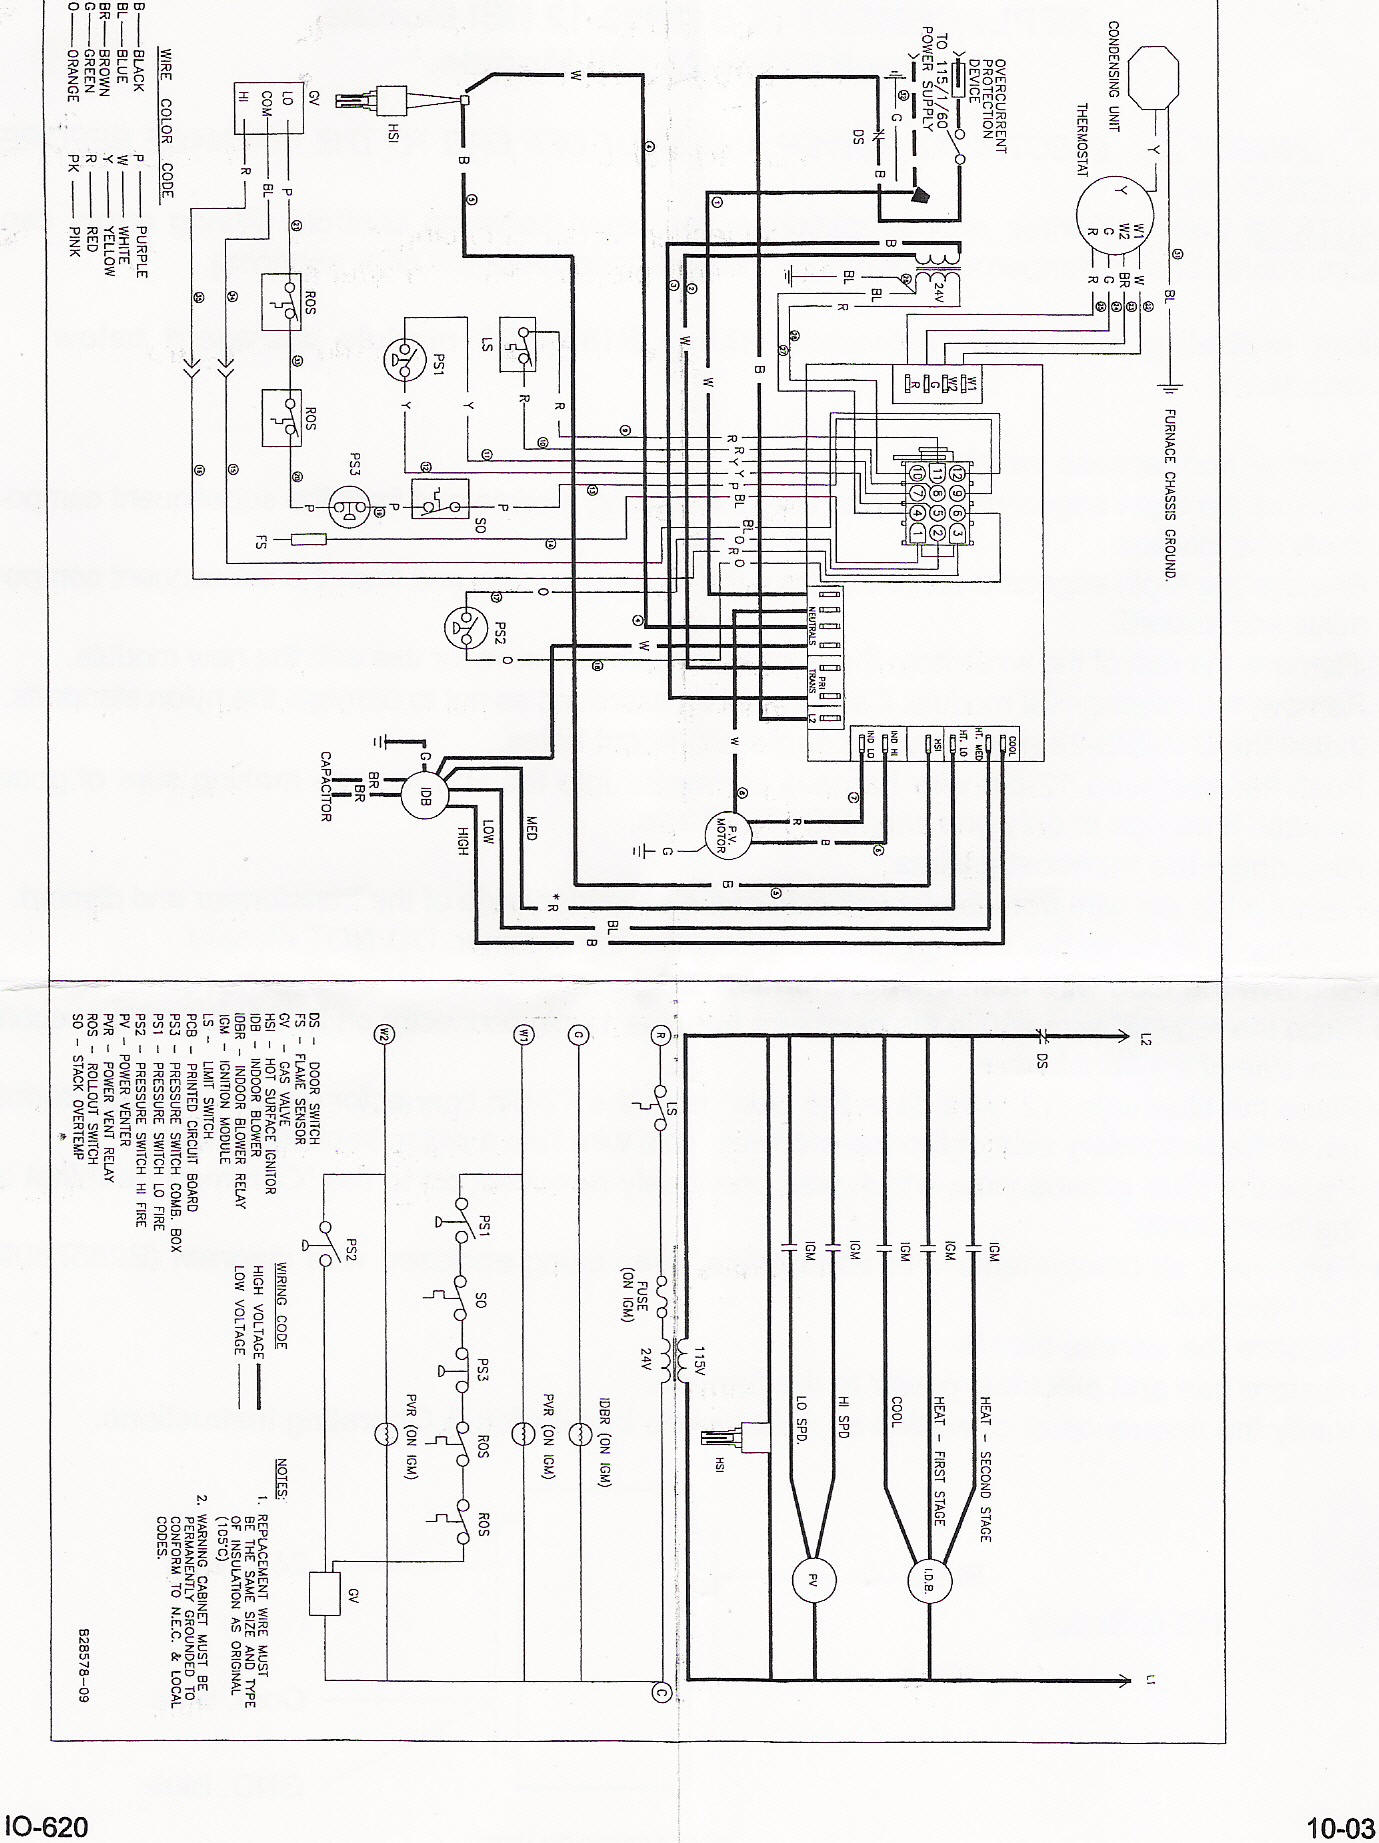 goodma2 instr goodman control board b18099 23 instructions fenwal ignition module wiring diagram at alyssarenee.co